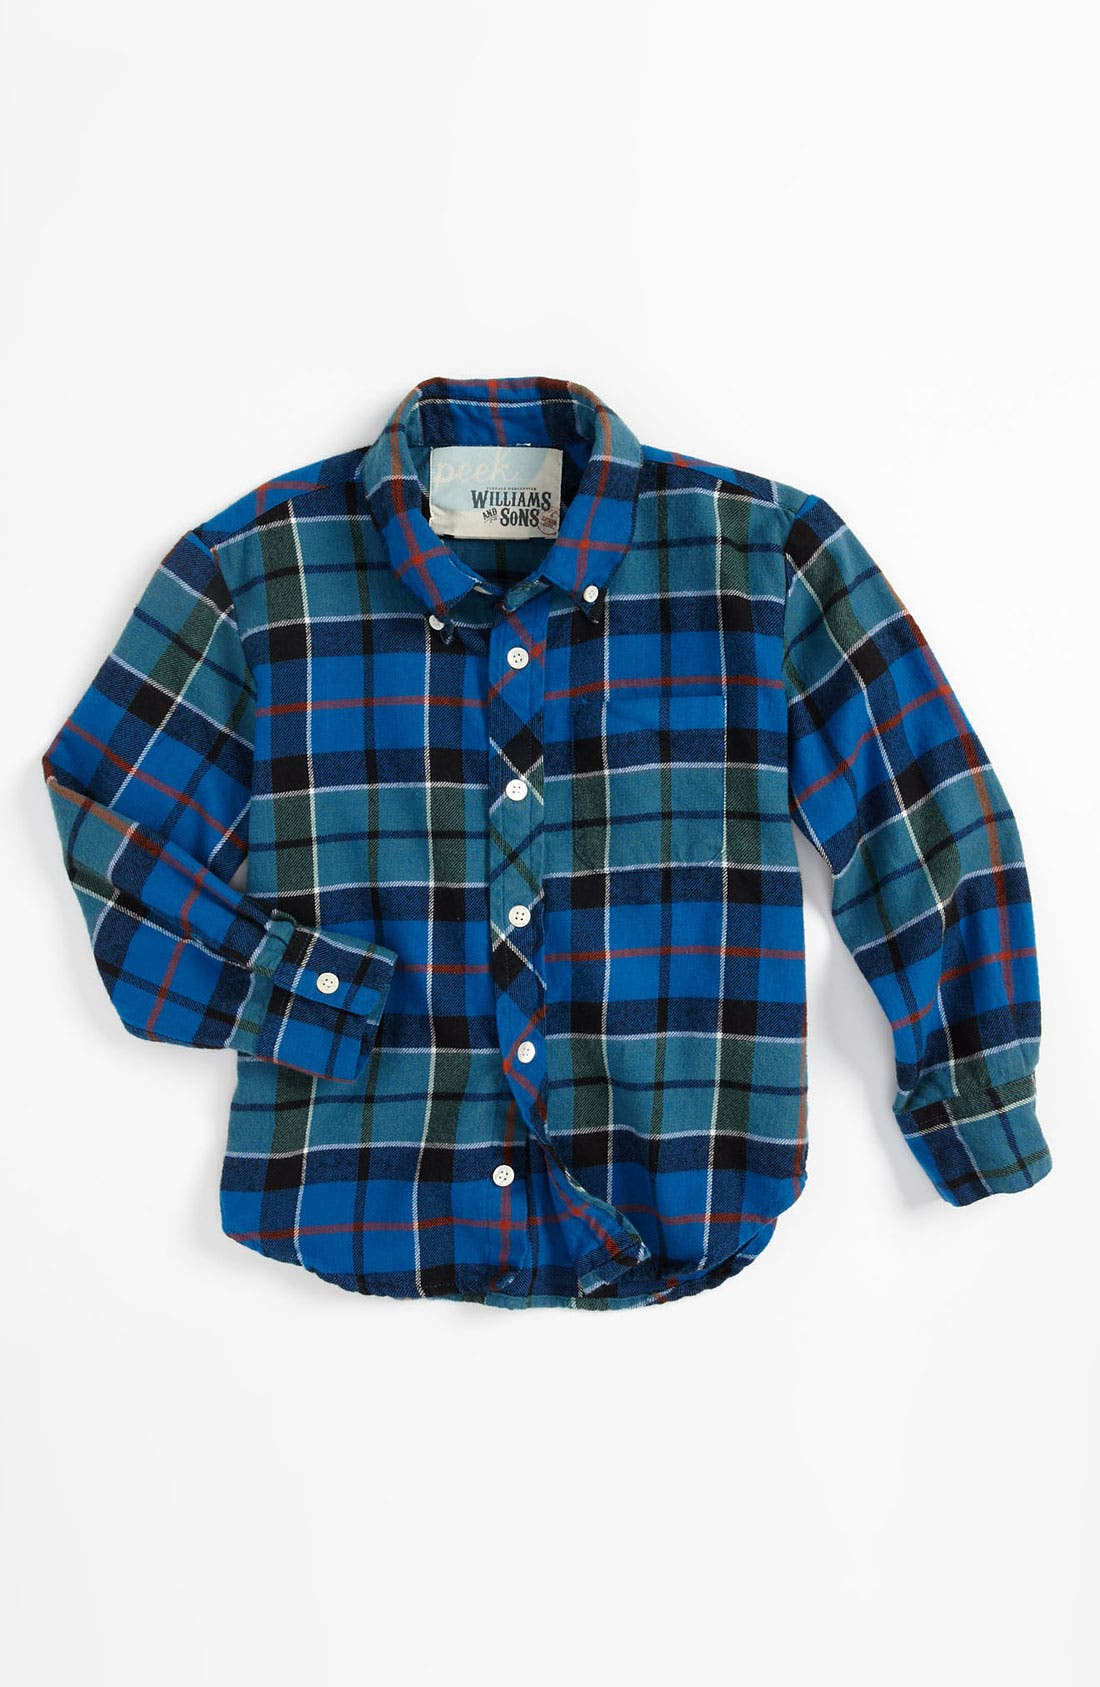 Main Image - Peek 'Barstow' Plaid Shirt (Toddler, Little Boys & Big Boys)